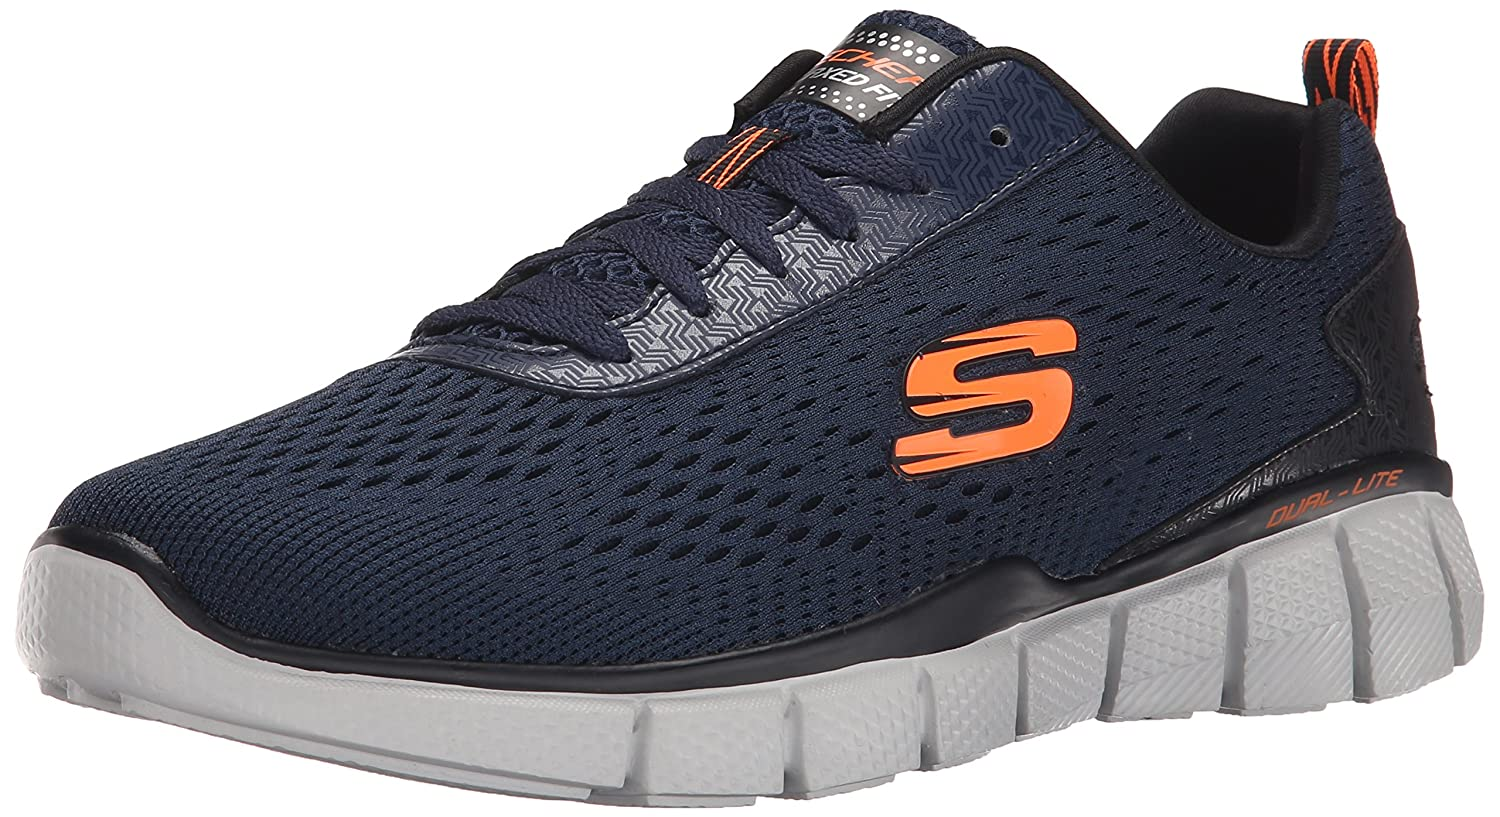 Skechers Herren Equalizer Turnschuhe 2.0 Settle The Score Turnschuhe Equalizer 37dc80